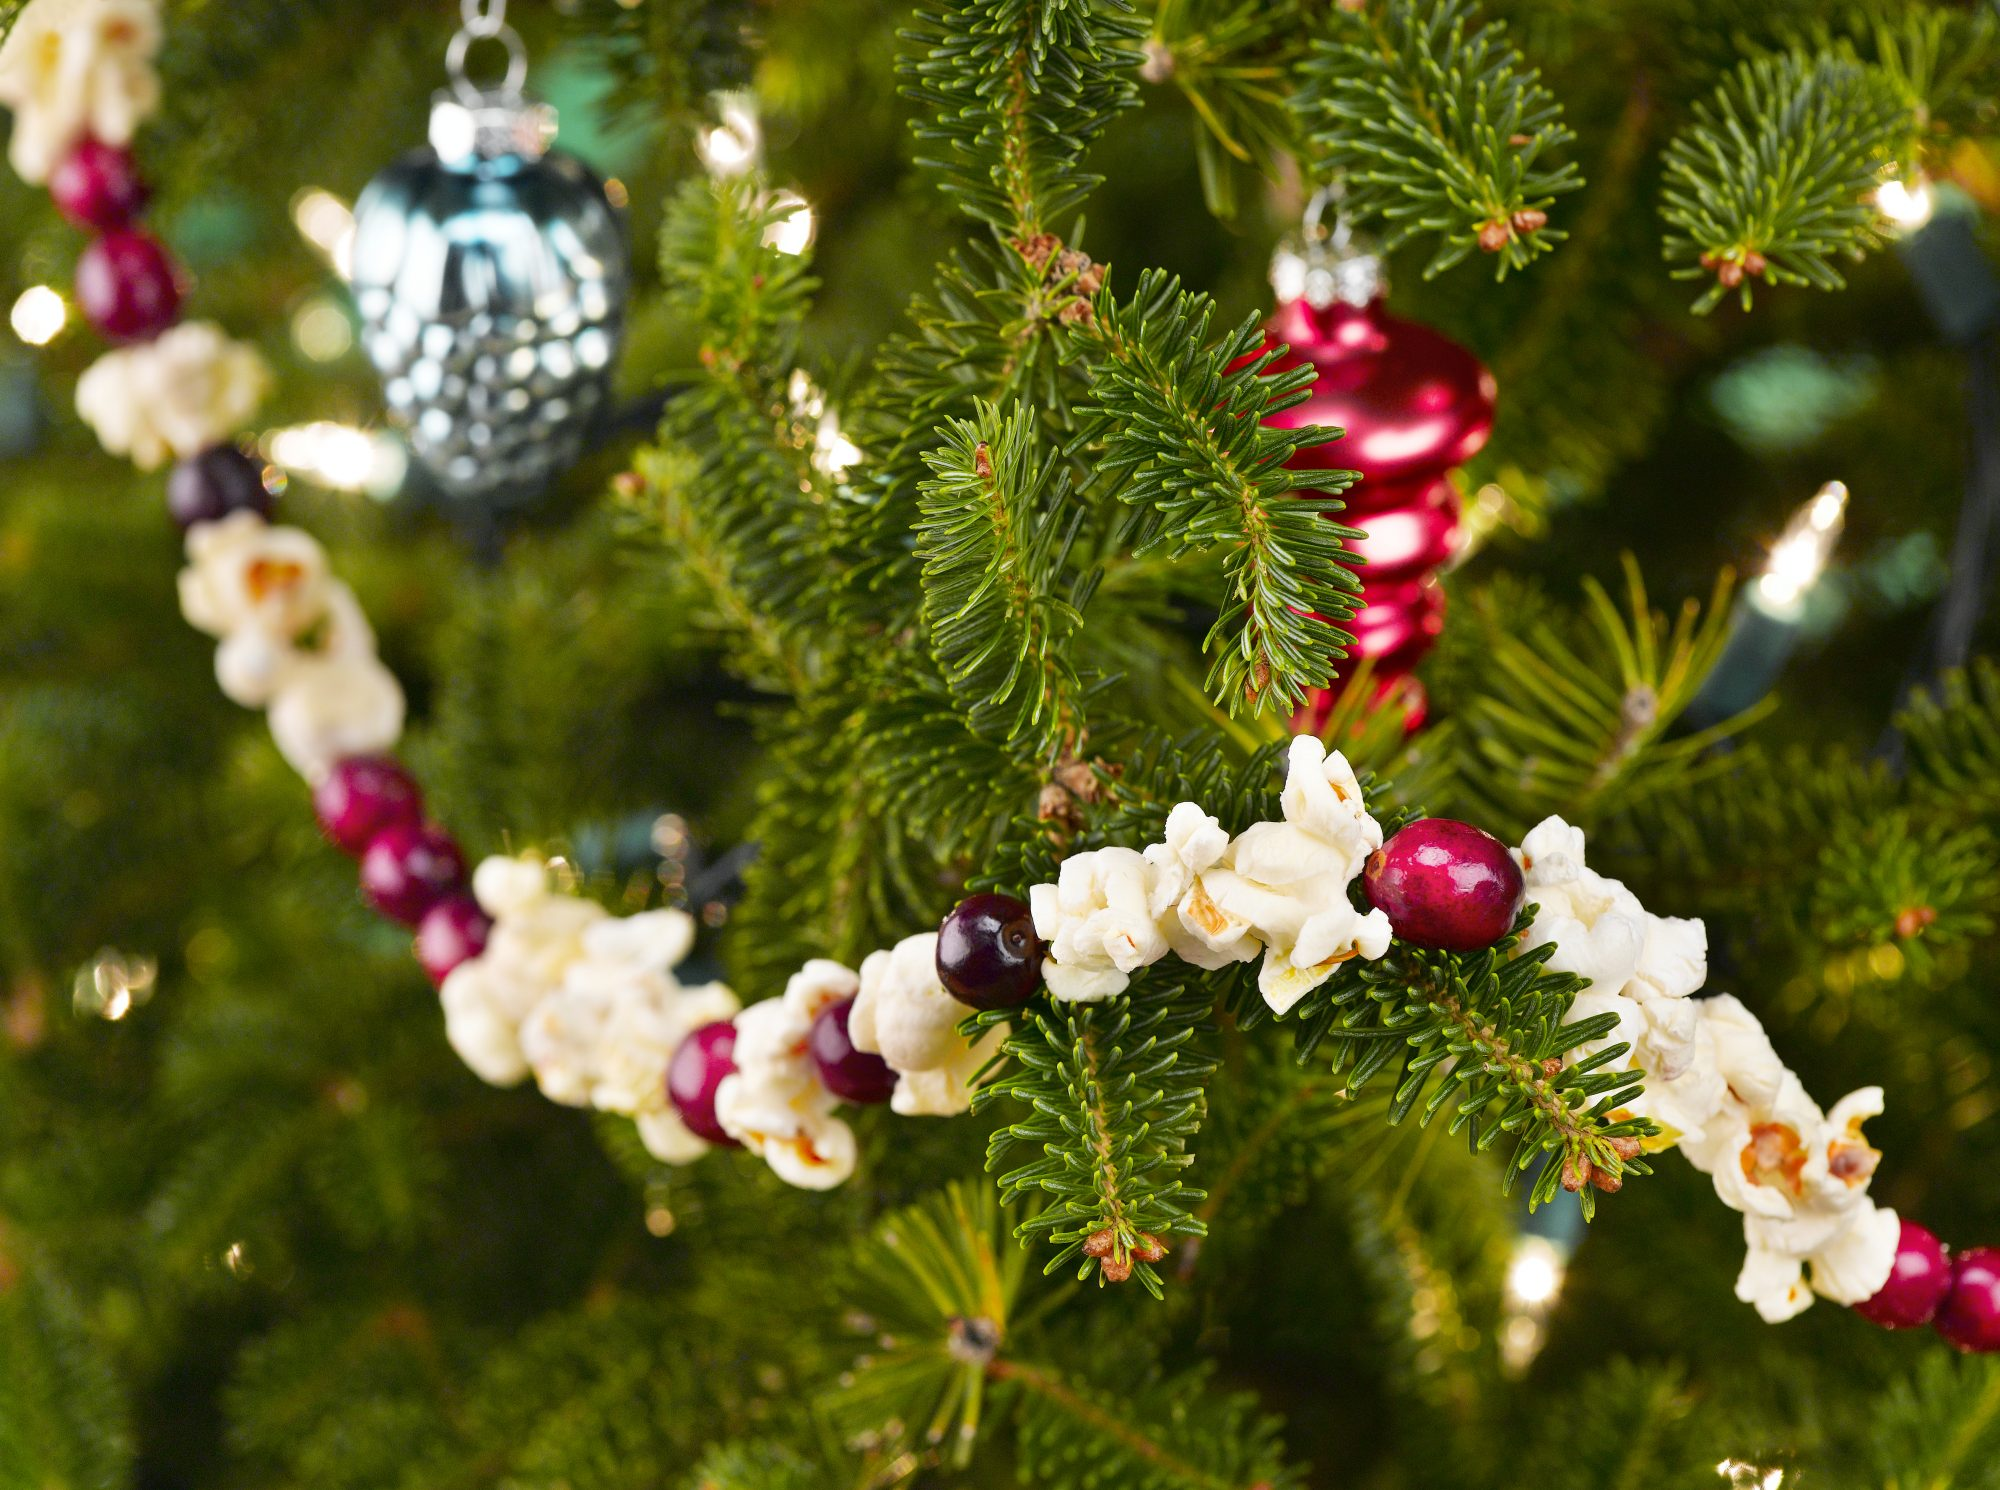 Close-up of a Christmas tree with popcorn and cranberry garland.